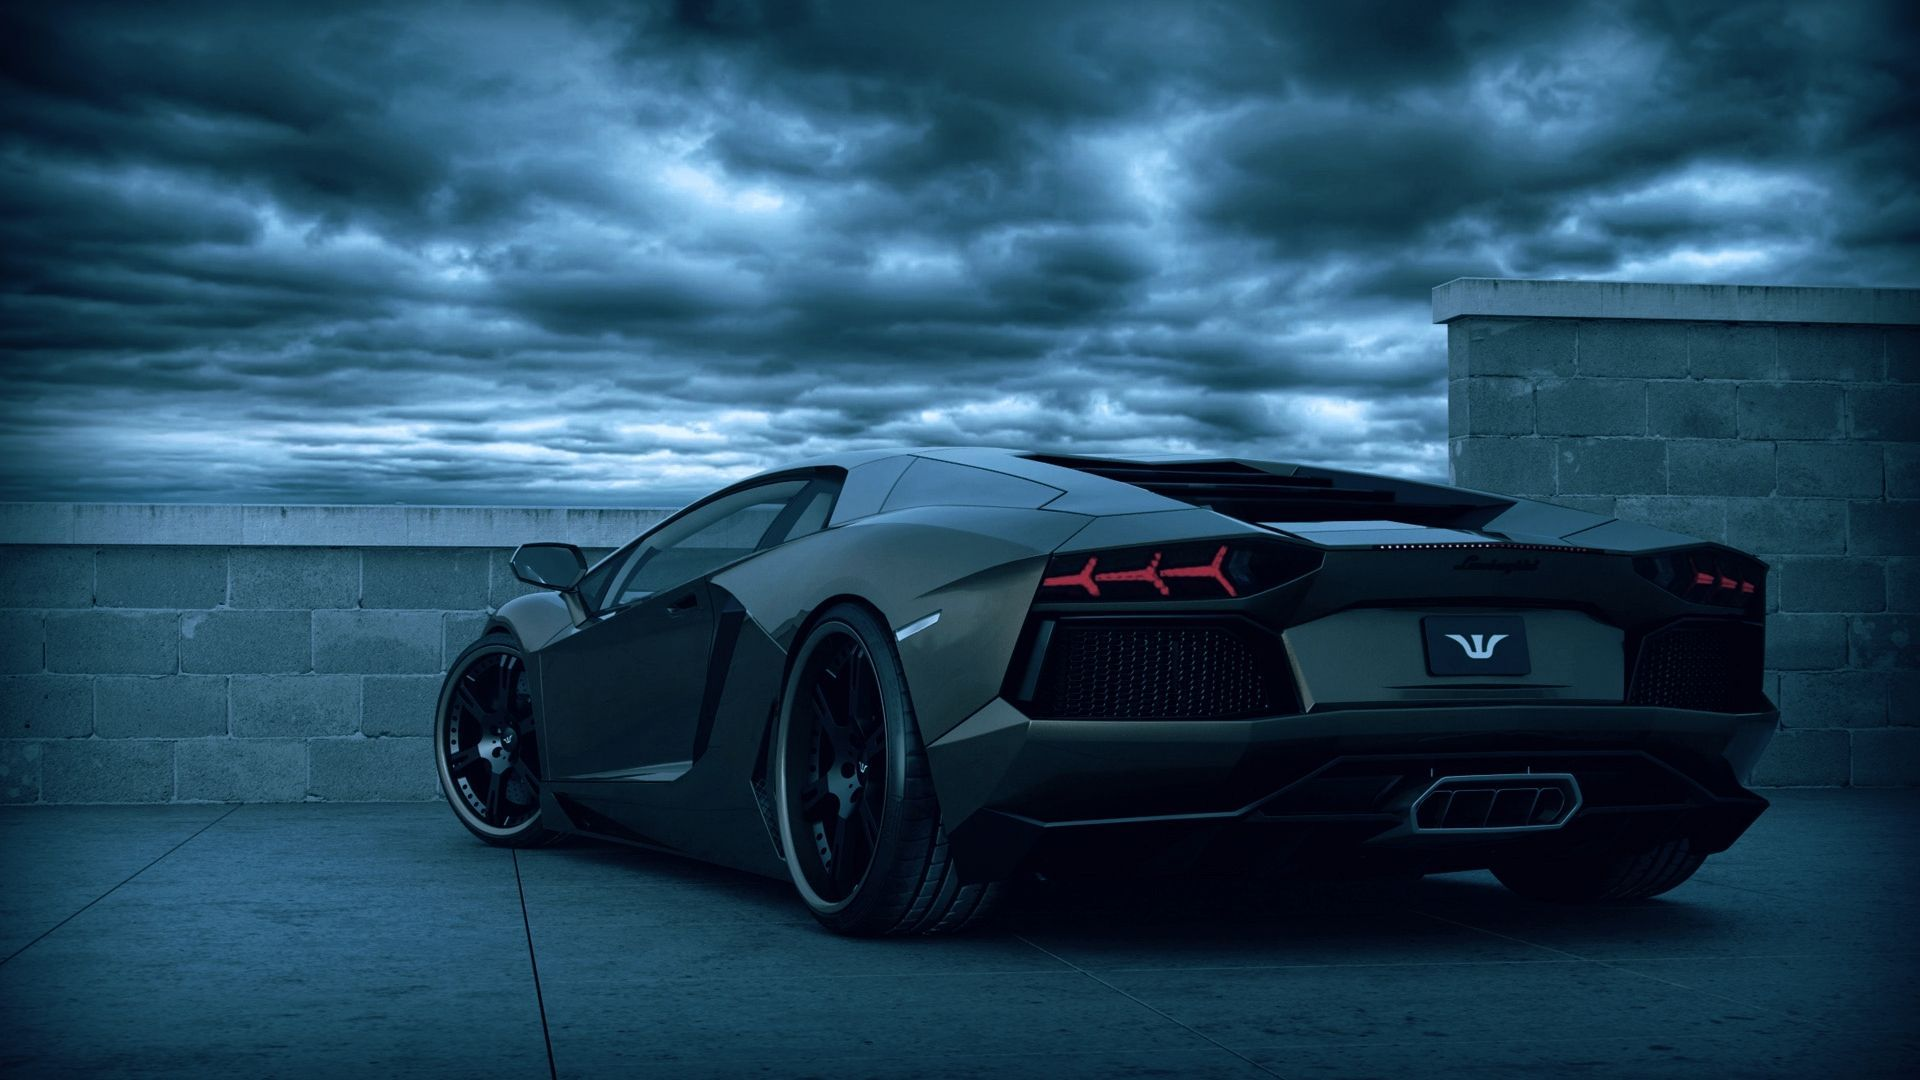 Lamborghini Aventador Black Ghost Special Car Wallpaper Cool